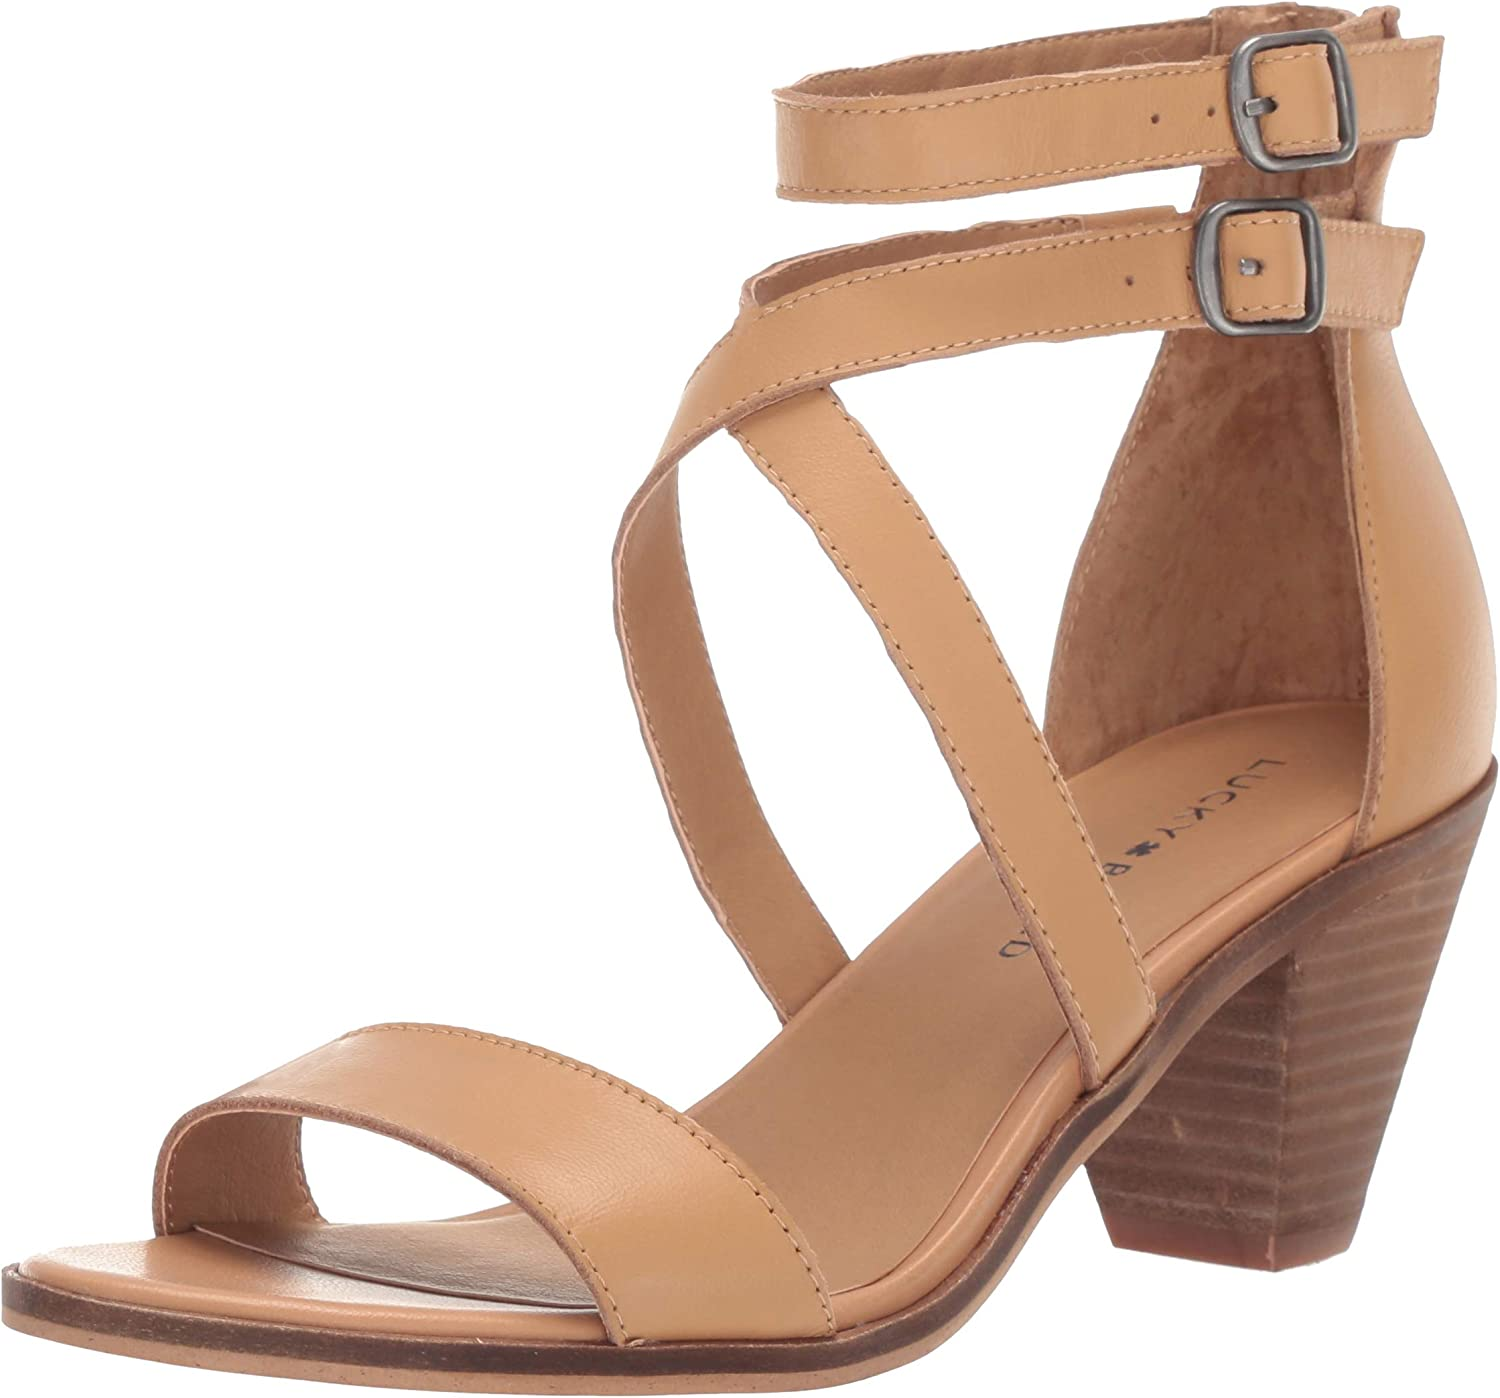 Lucky Brand Womens Ressia High Heel Heeled Sandal